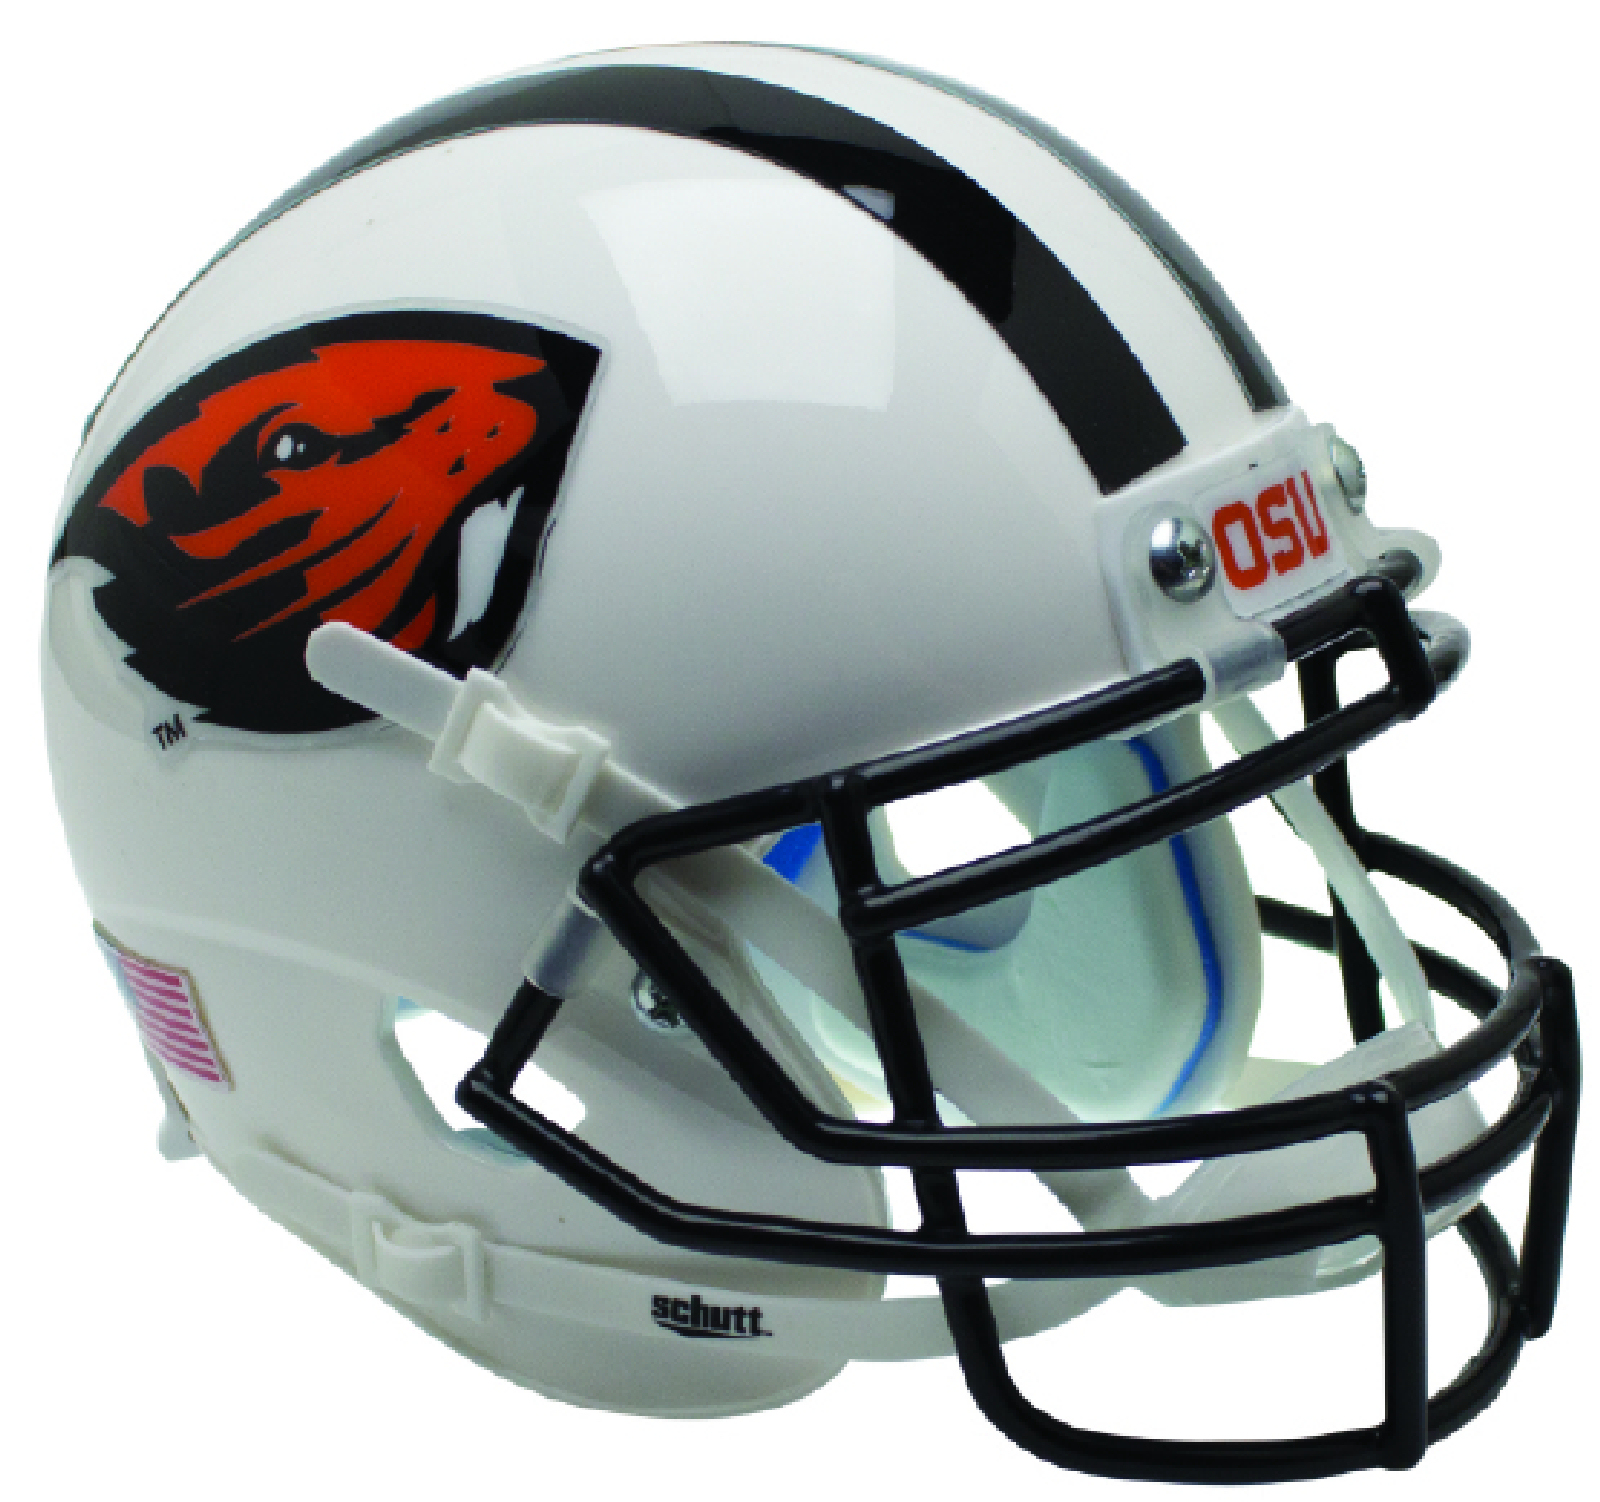 Oregon State Beavers Authentic College XP Football Helmet Schutt <B>White Beaver</B>